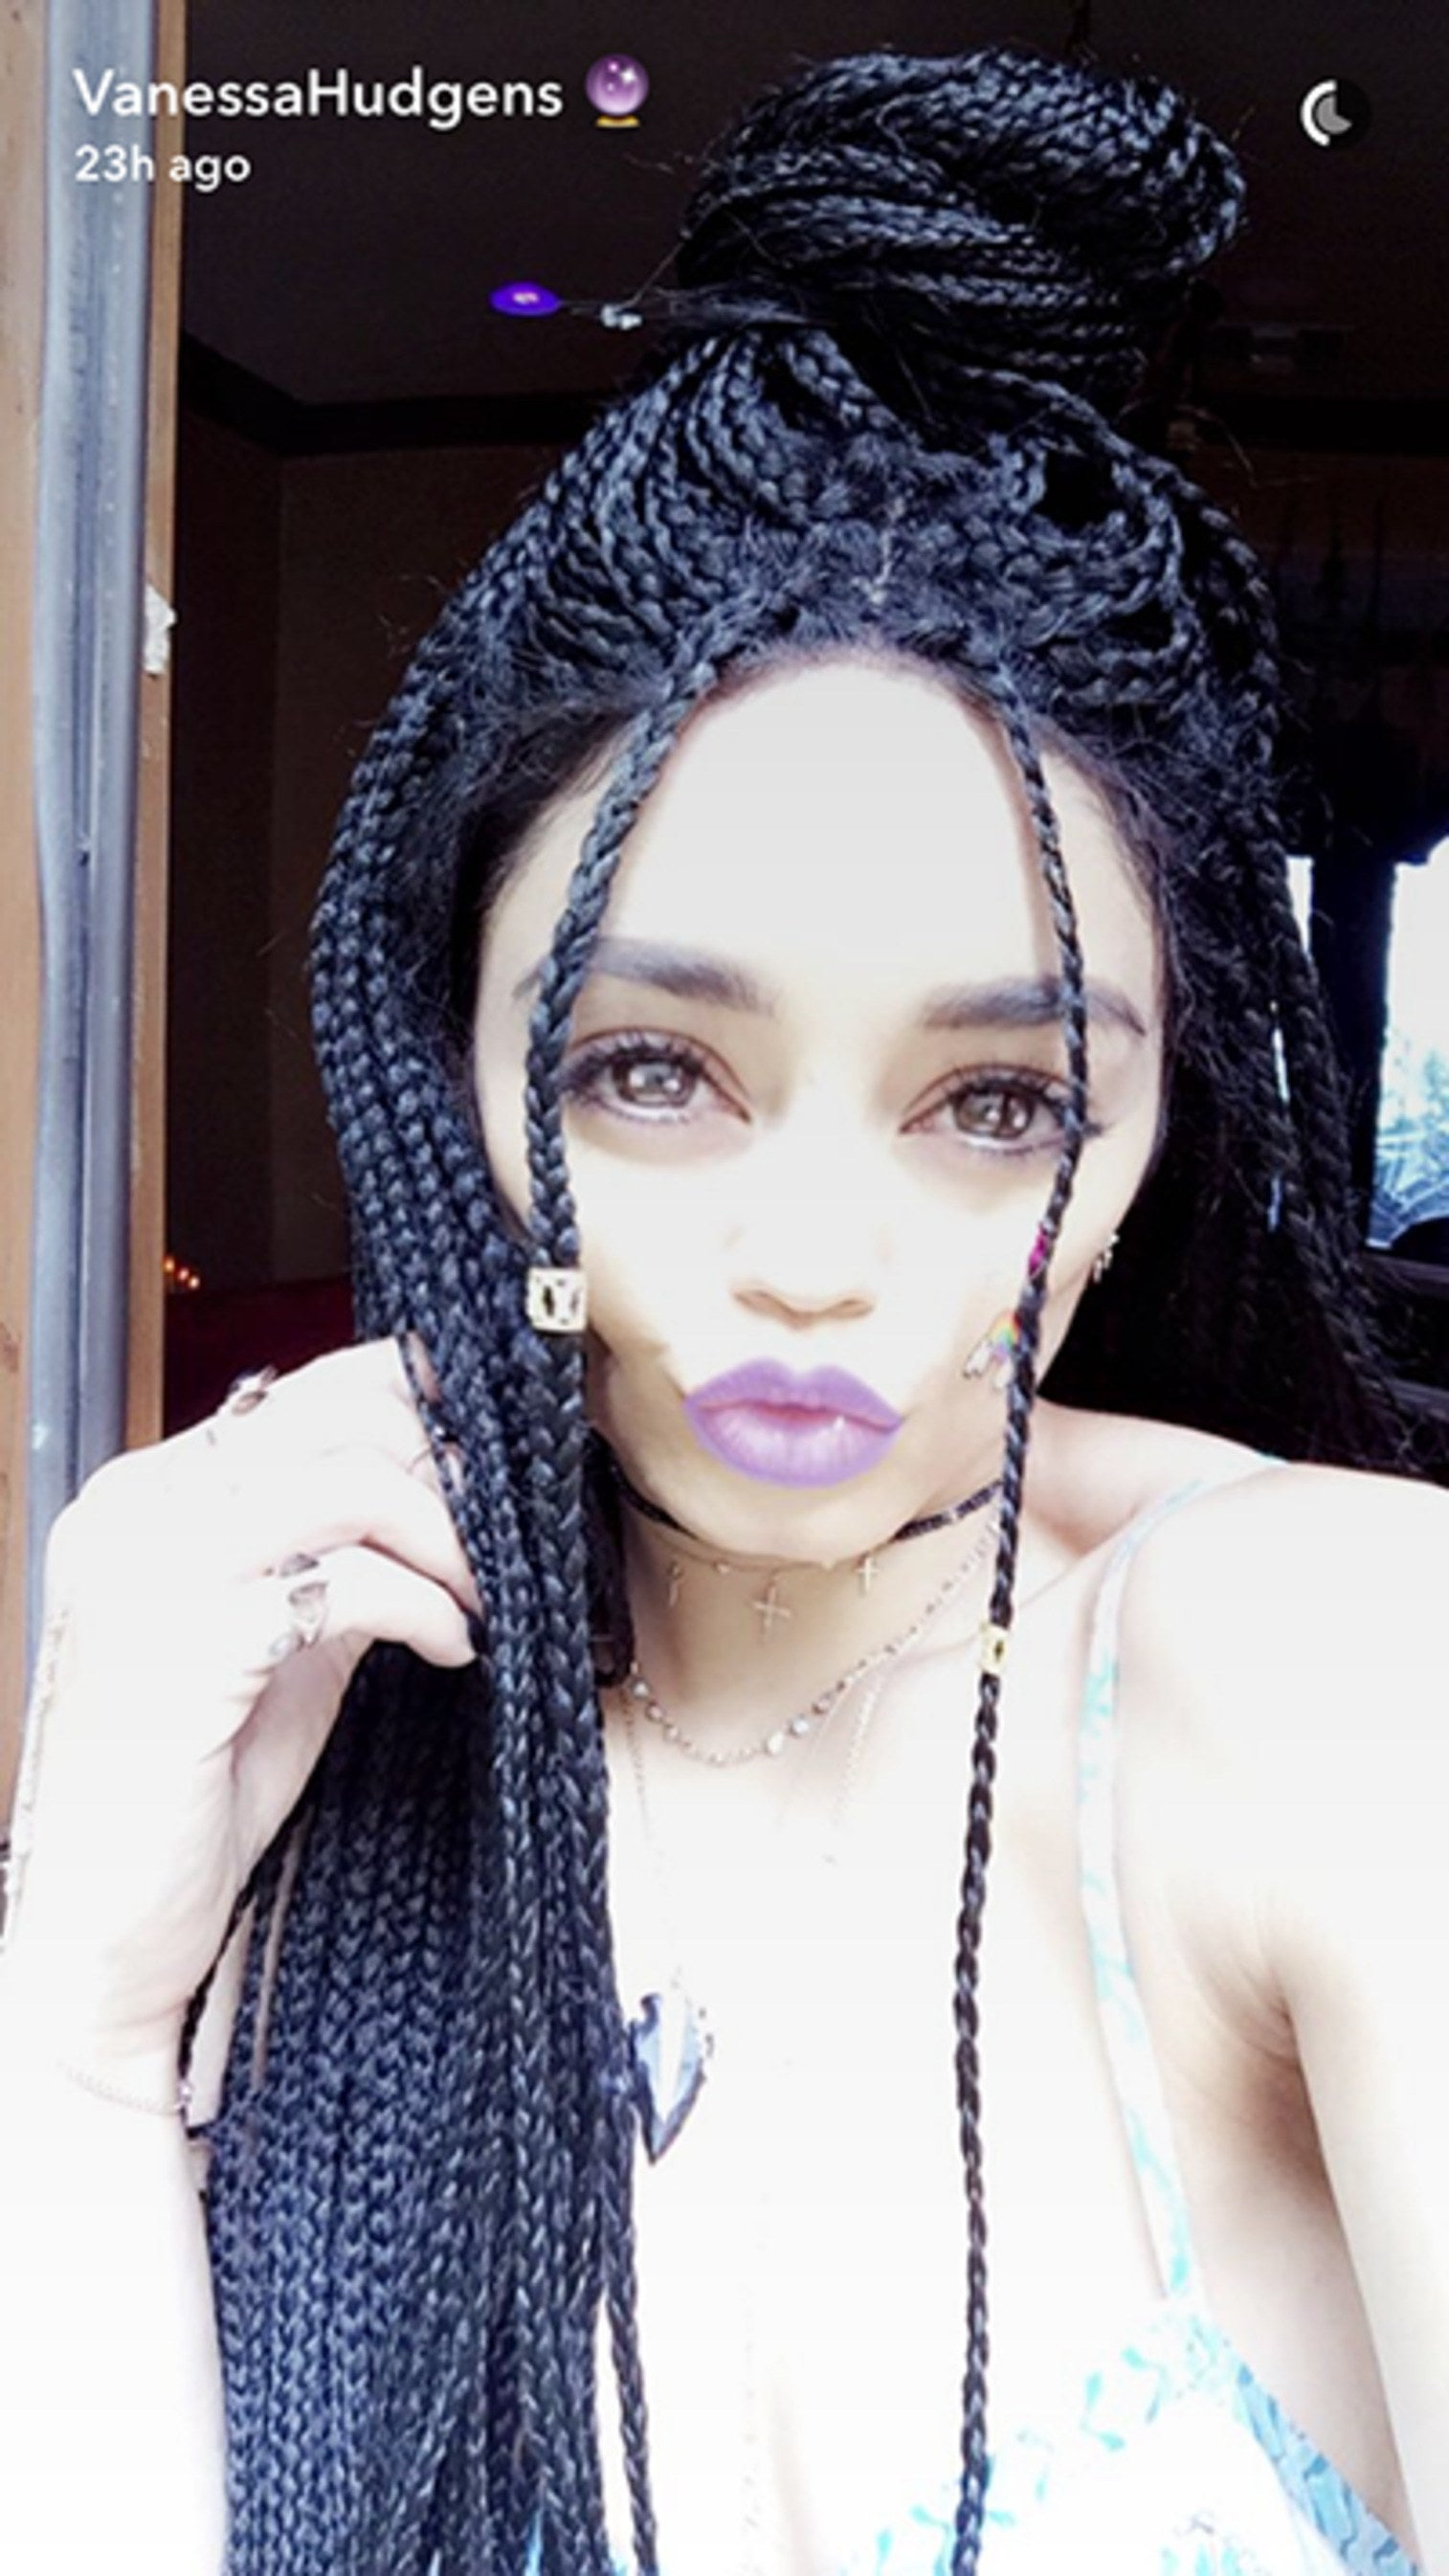 Vanessa Hudgens Accused Of Cultural Appropriation